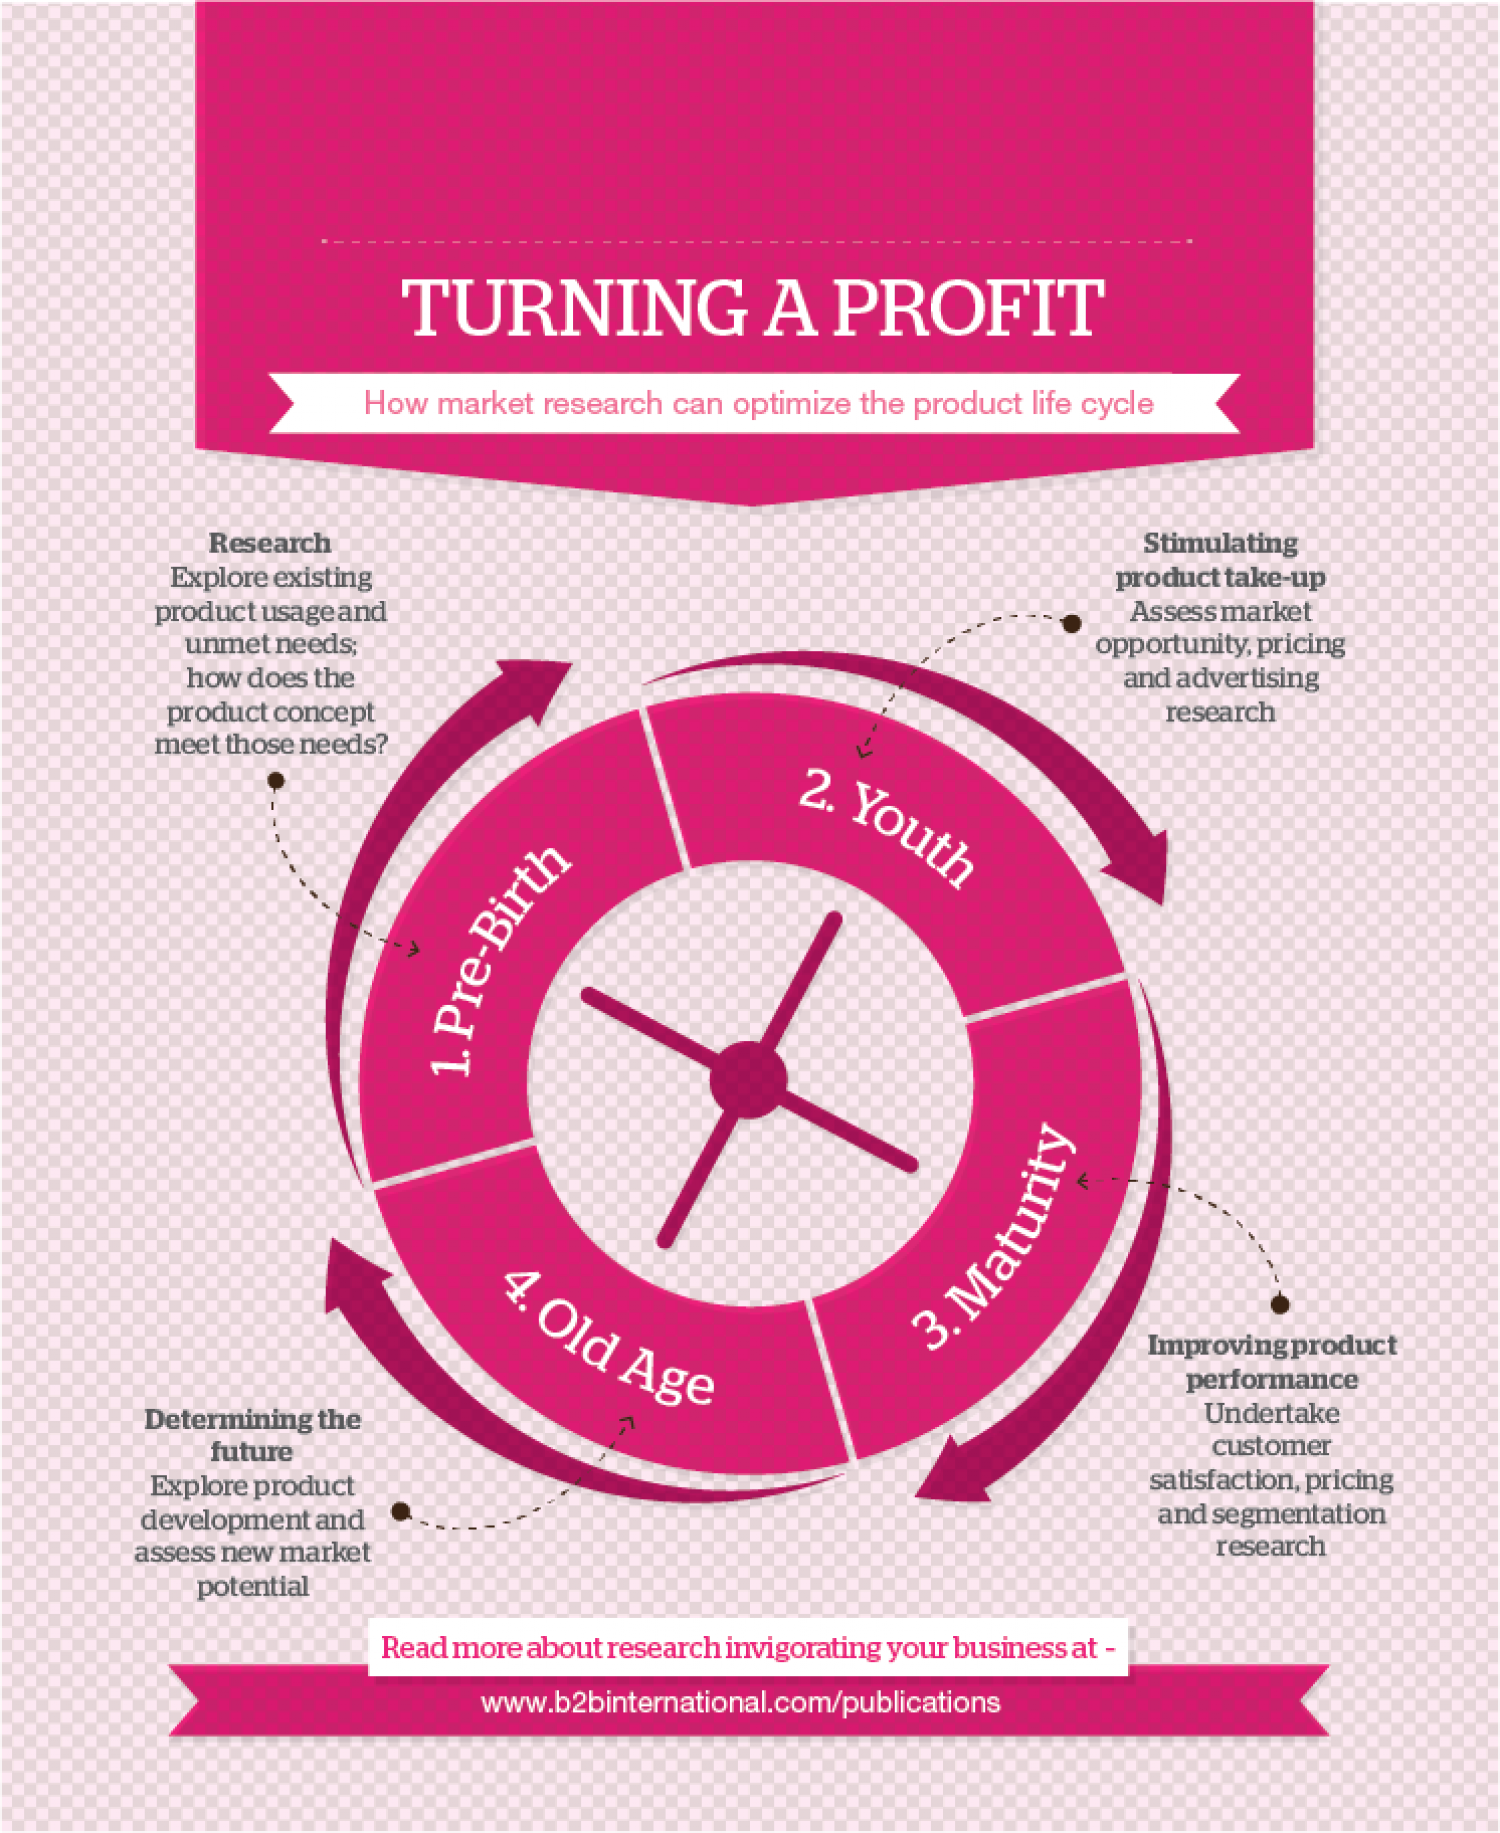 How market research can optimise the product life cycle Infographic